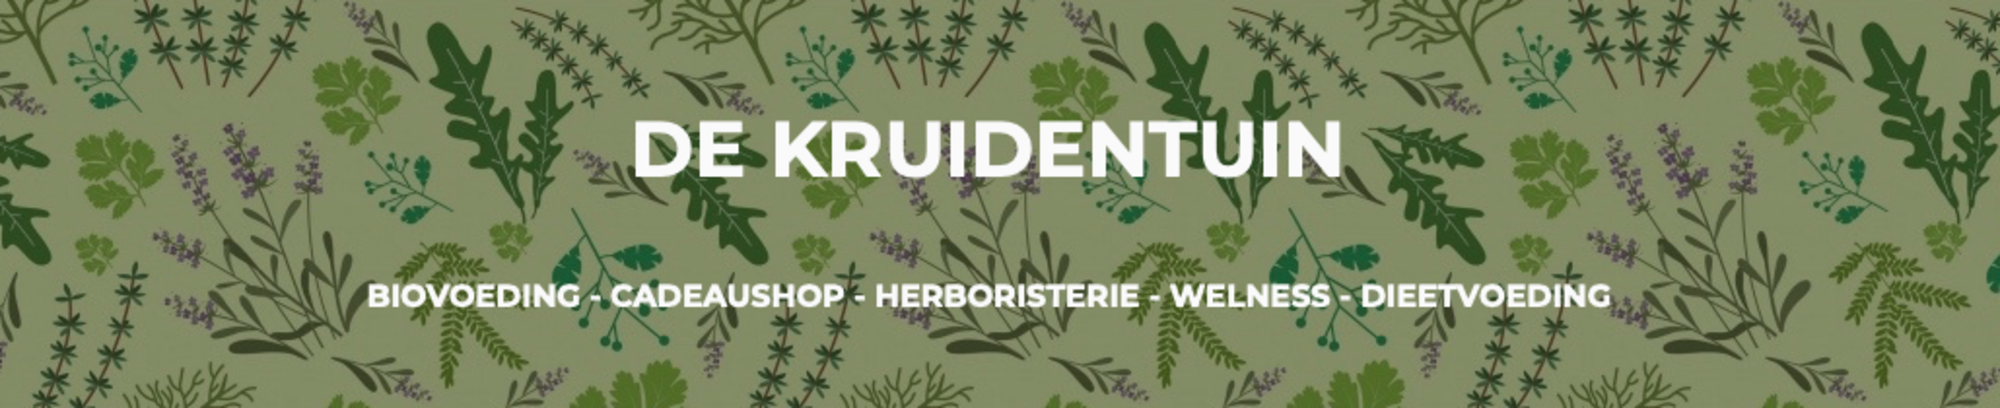 Header De Kruidentuin in Tongeren